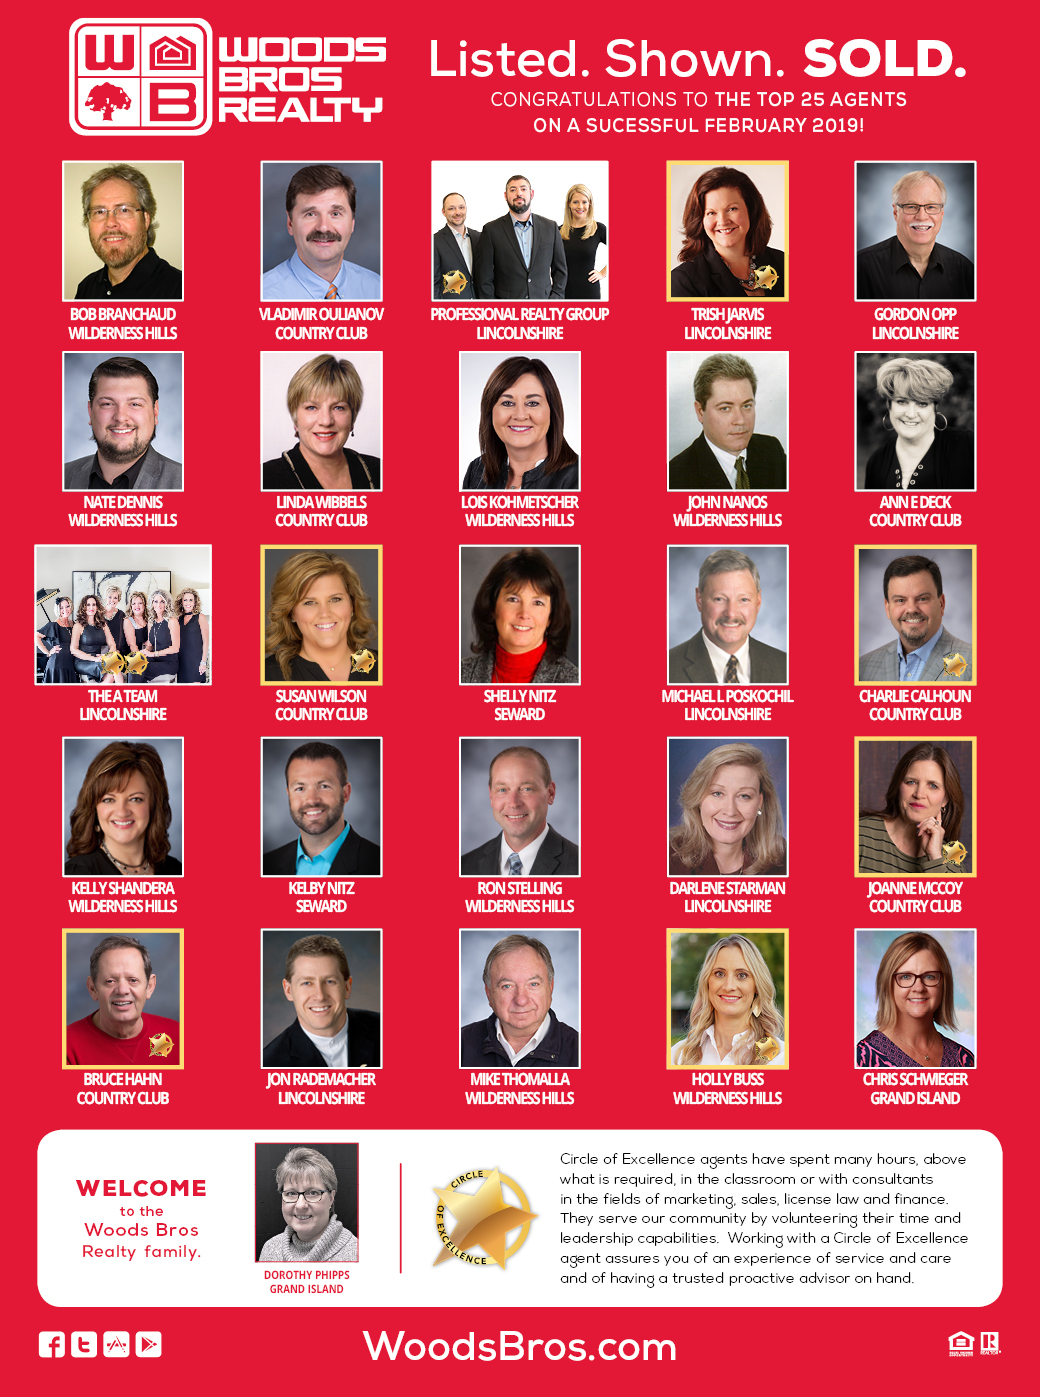 Woods Bros Realty Top Agents Feb 2019